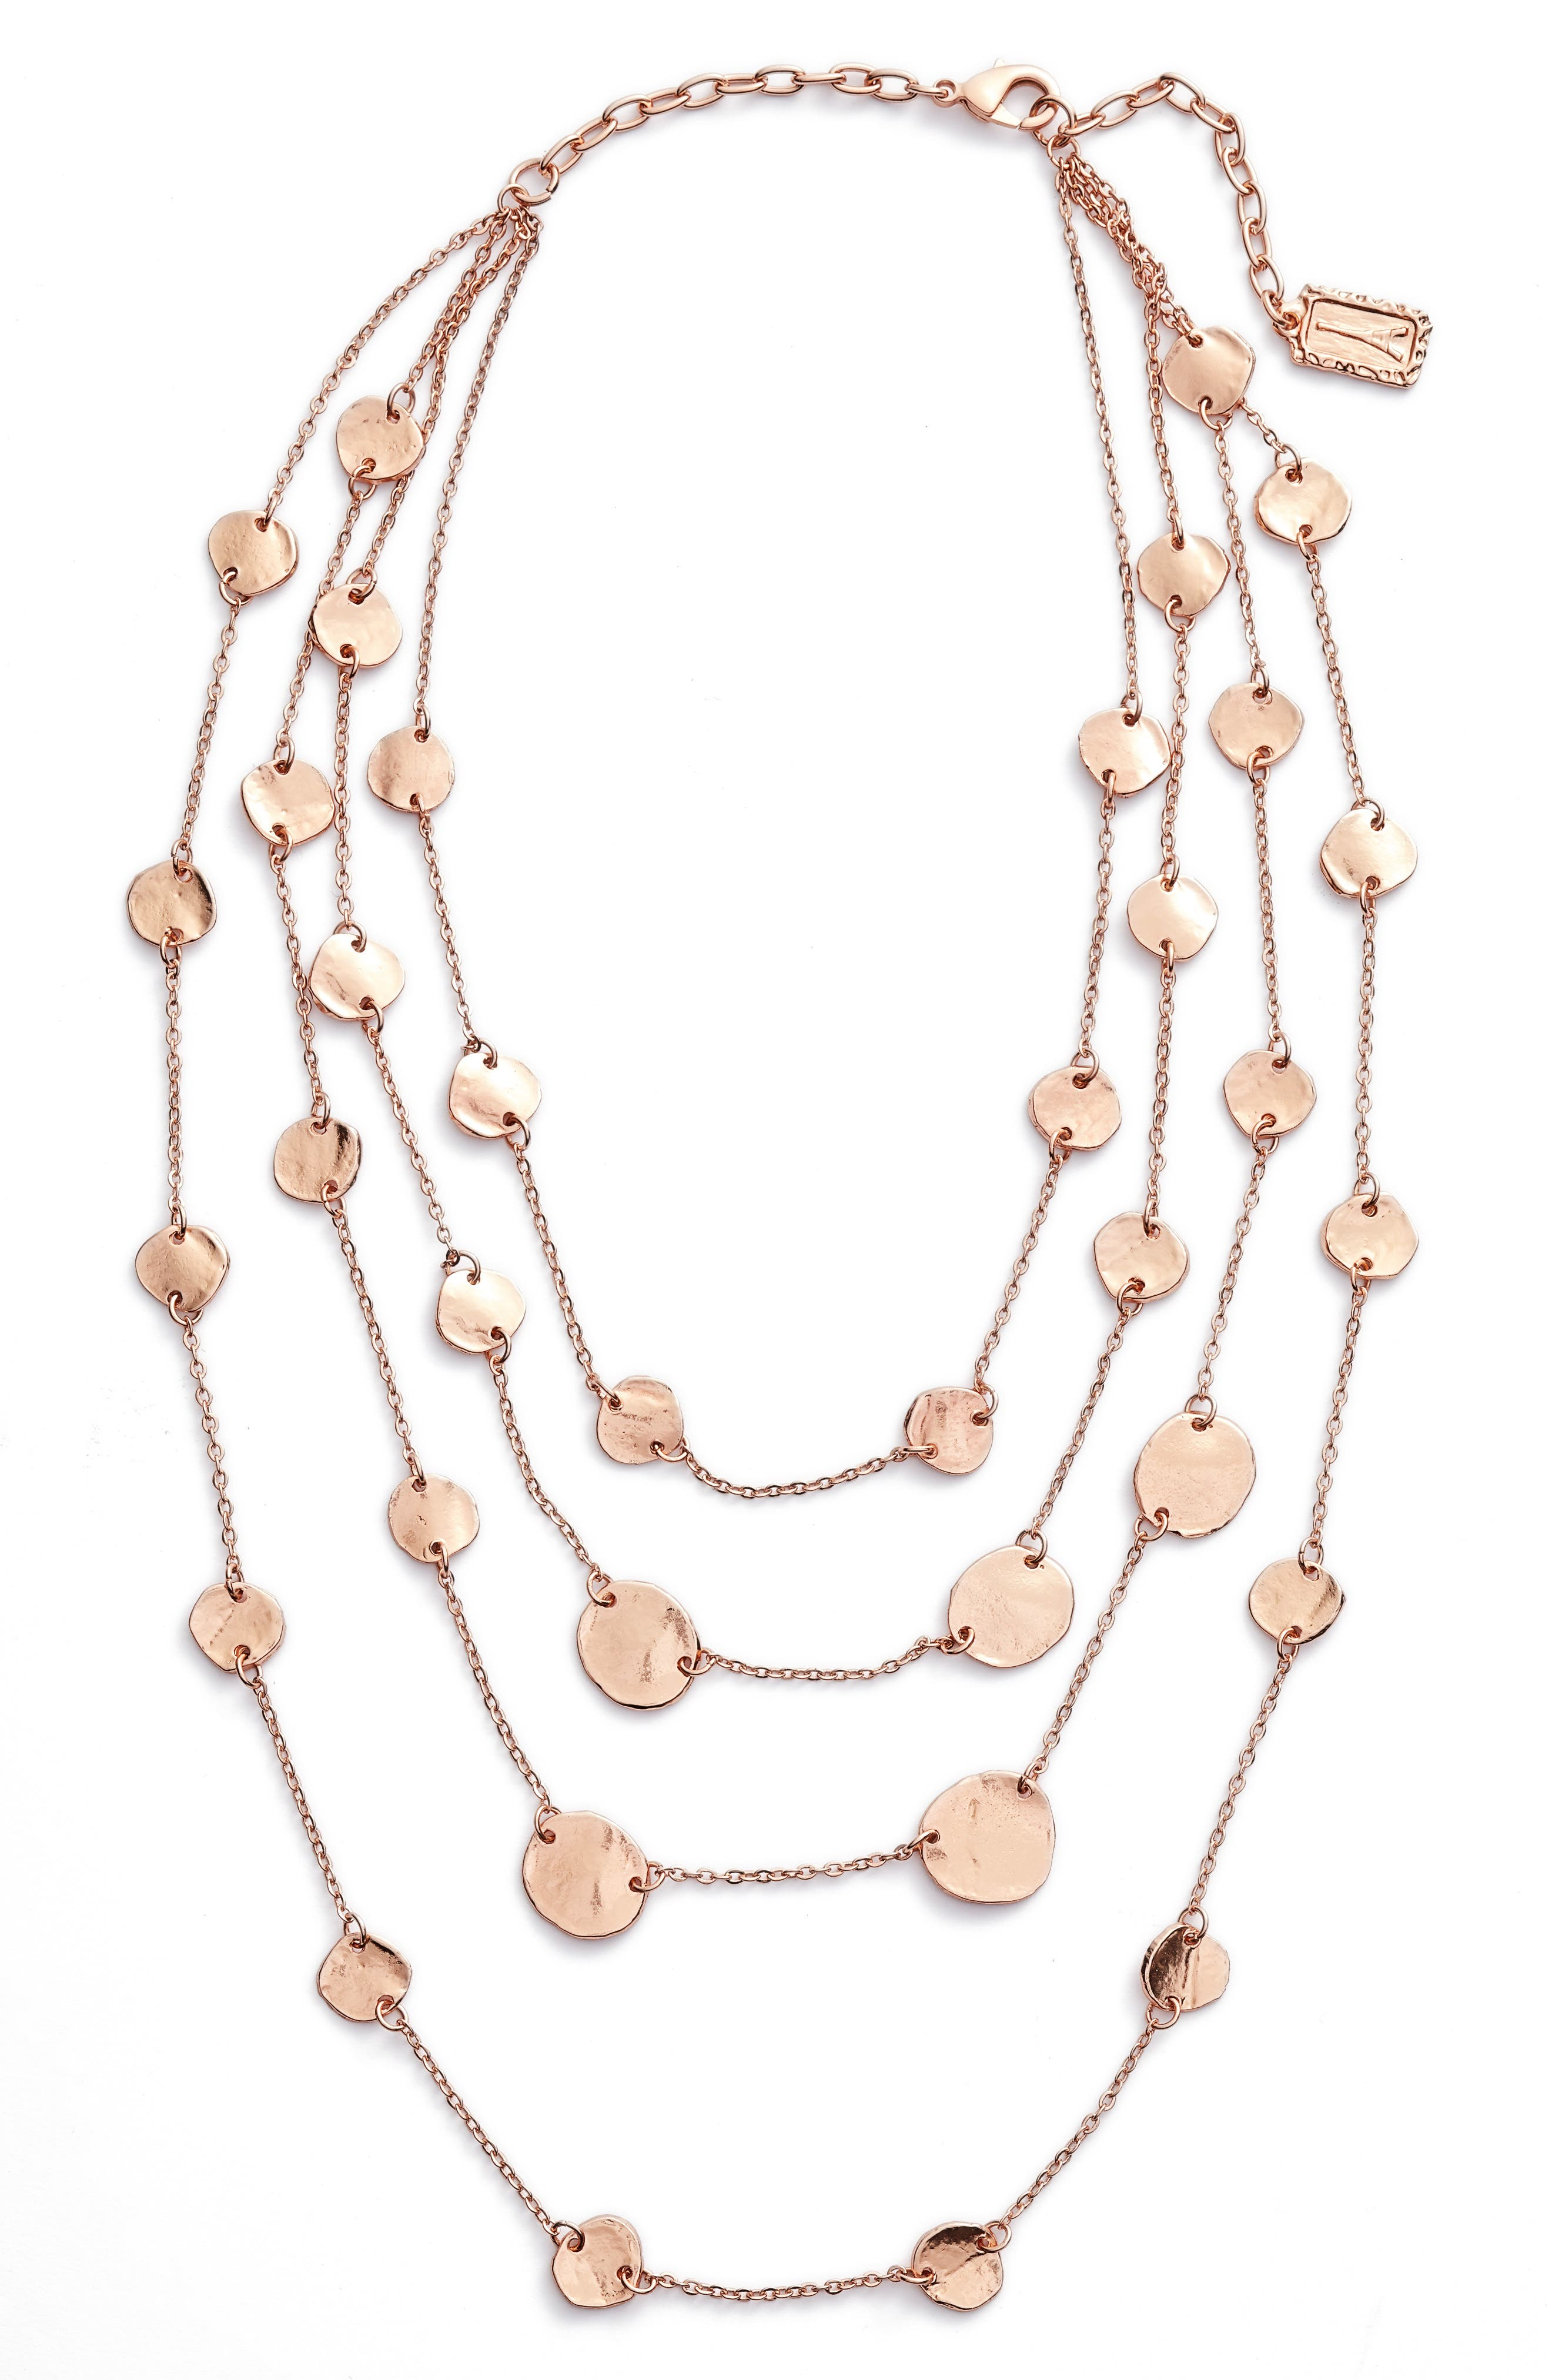 Karine Sultan Manon Layered Necklace